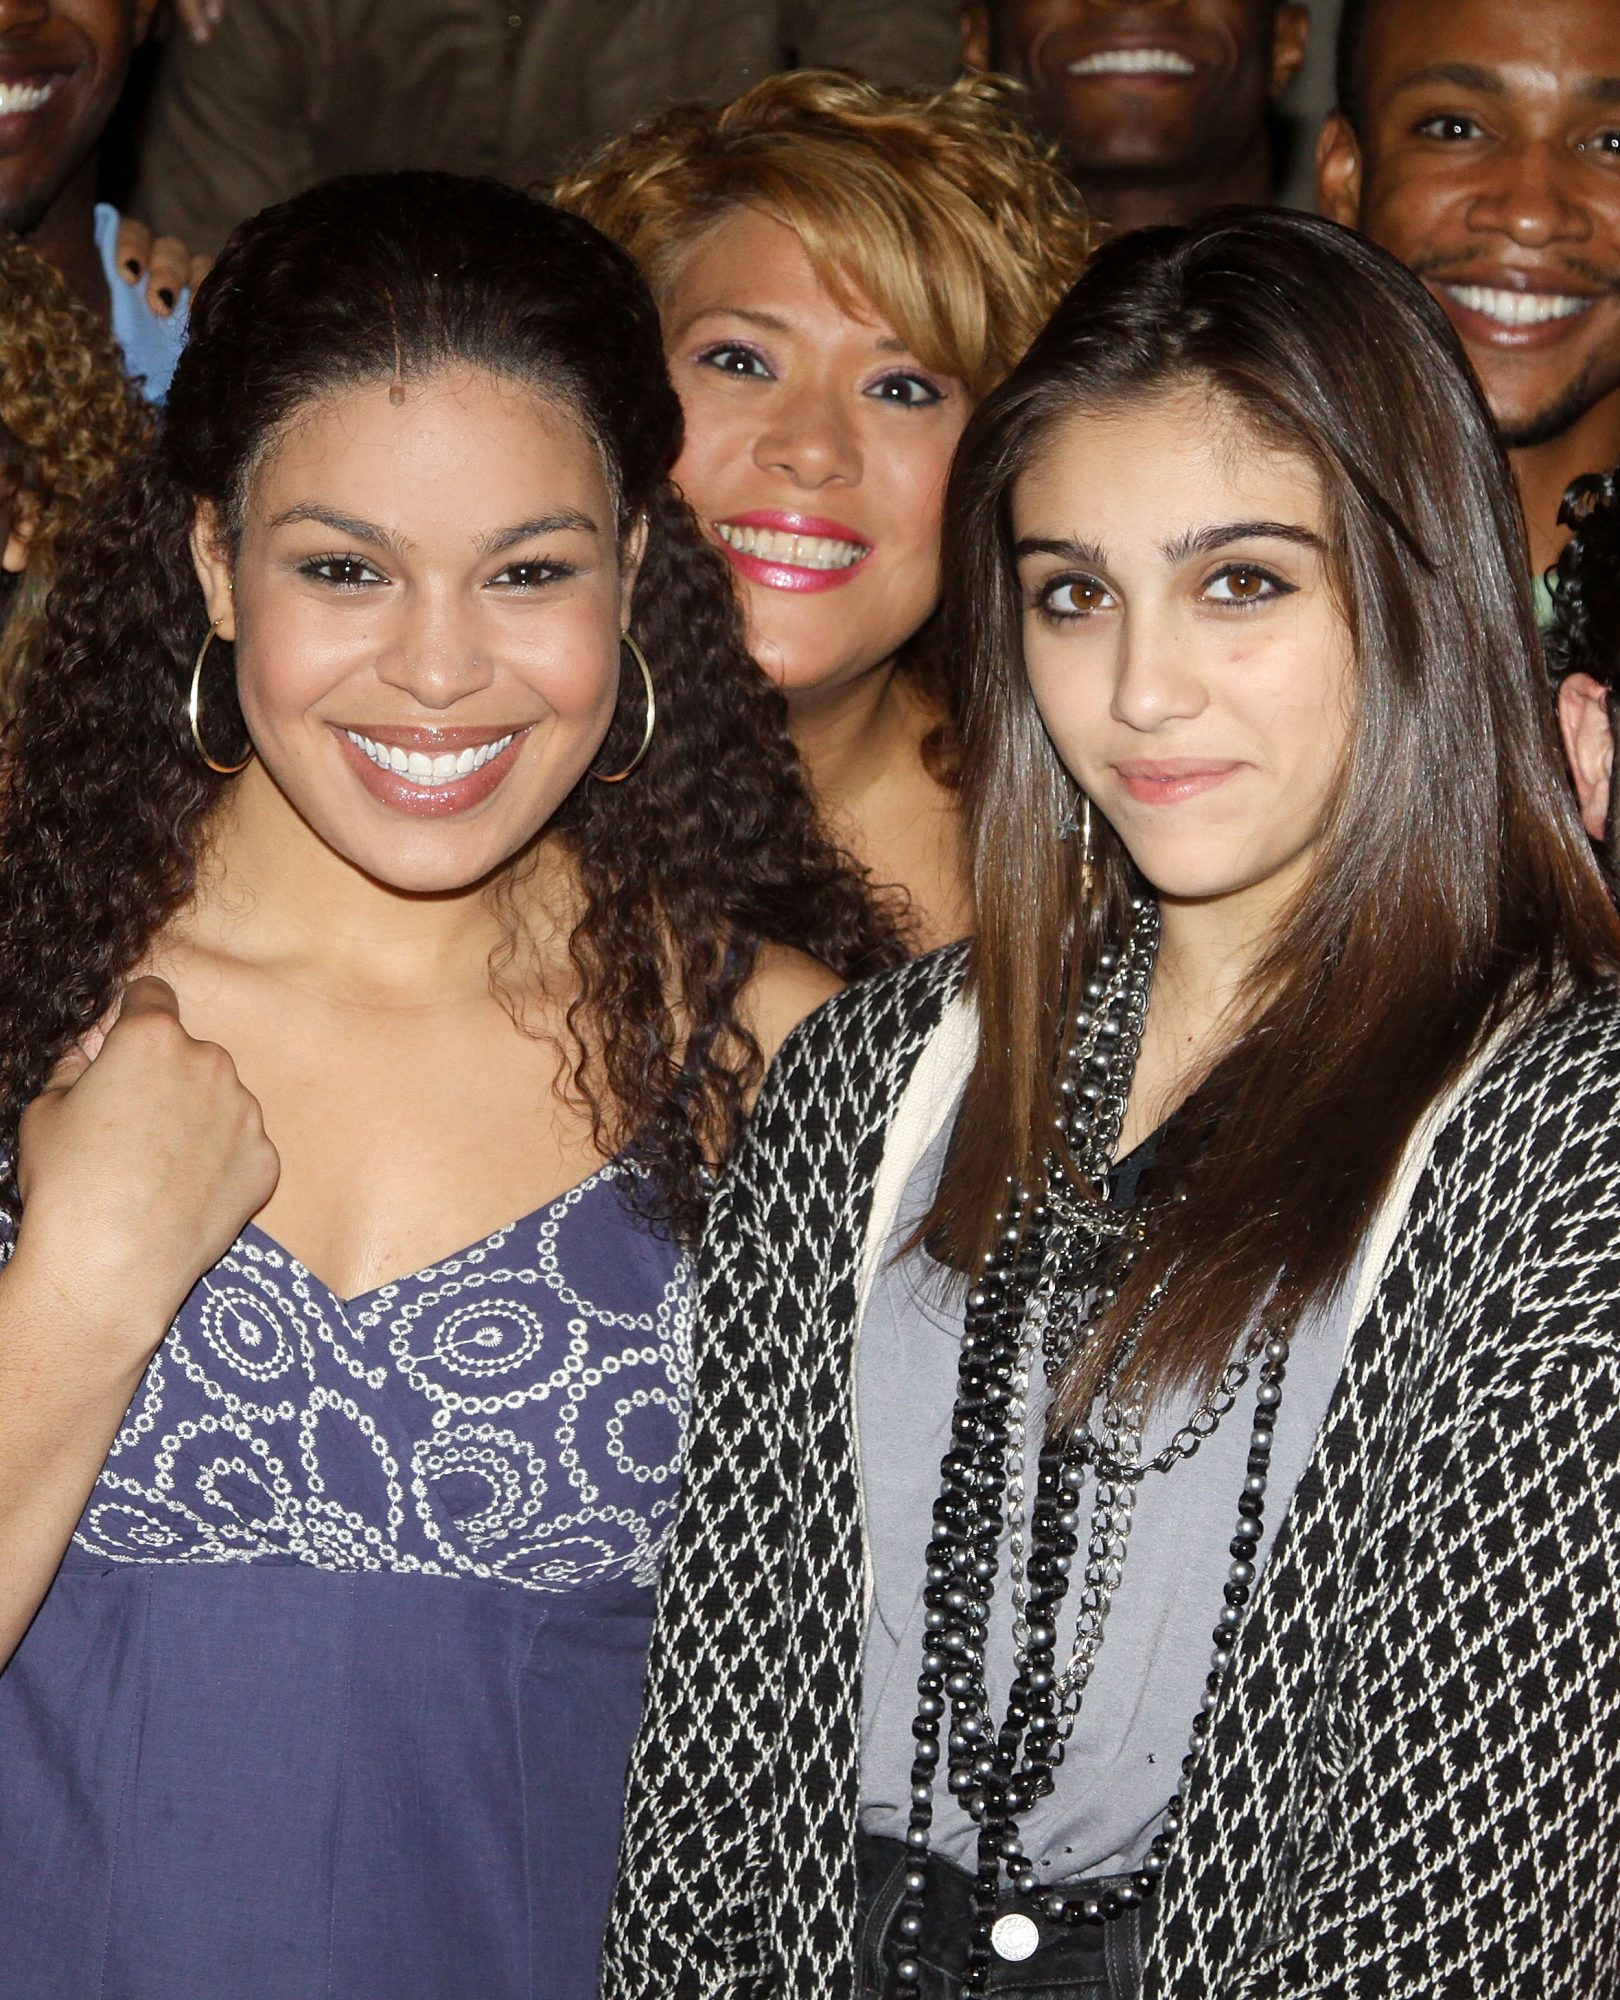 Lourdes Leon Celebrates Her 14th Birthday at  In The Heights  on Broadway